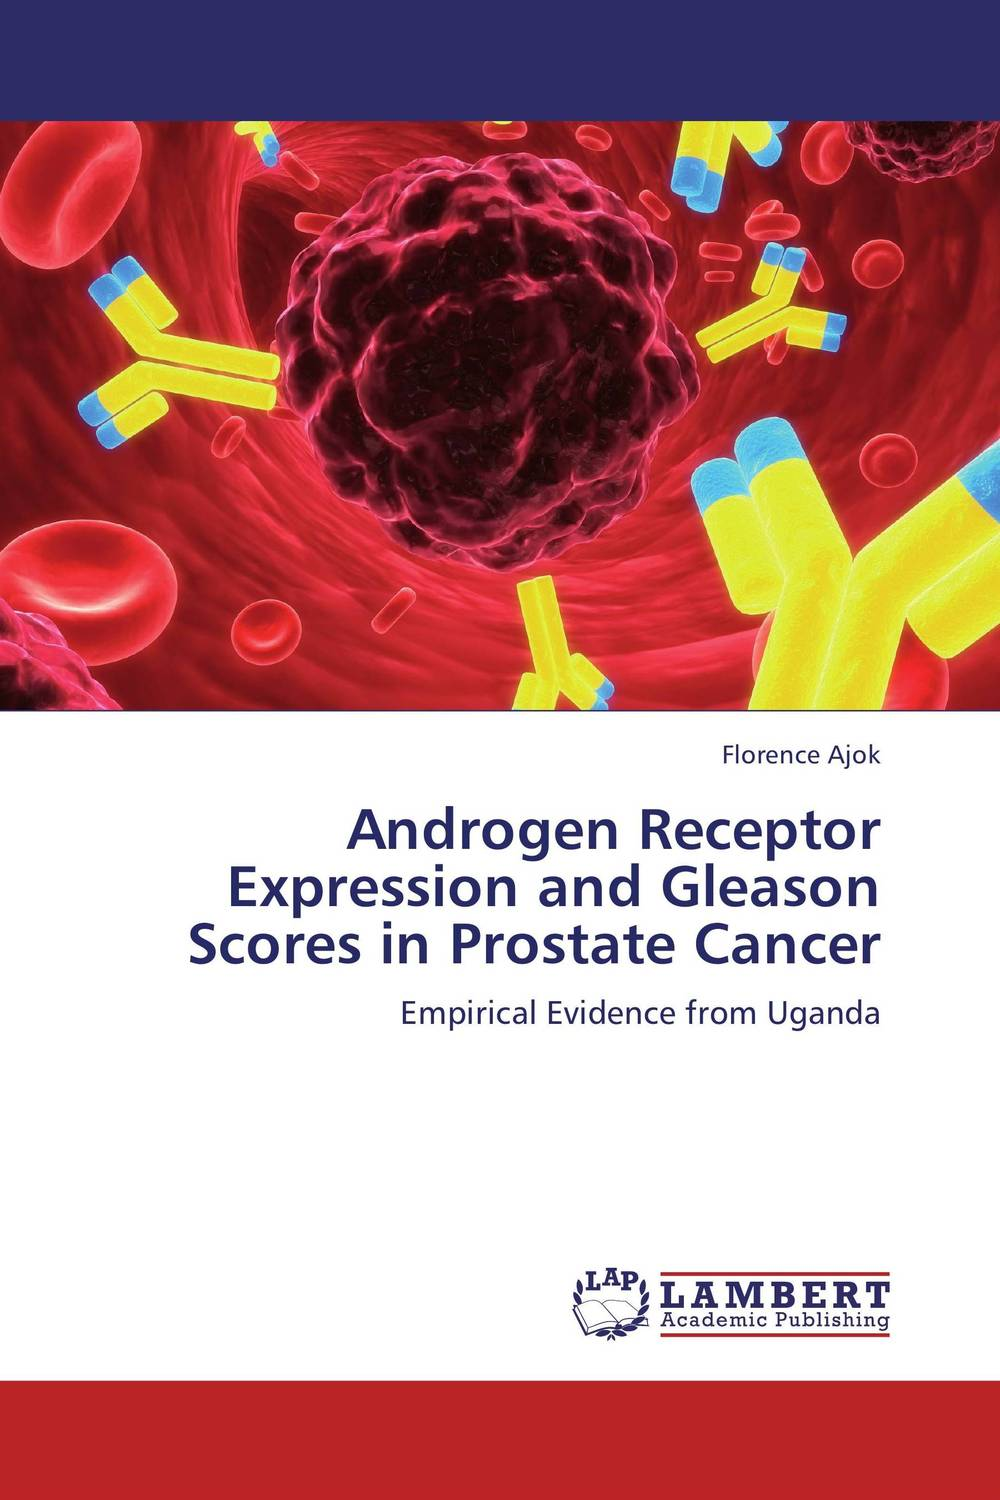 Androgen Receptor Expression and Gleason Scores in Prostate Cancer improved expression of bacterial chia in plant by codon optimisation